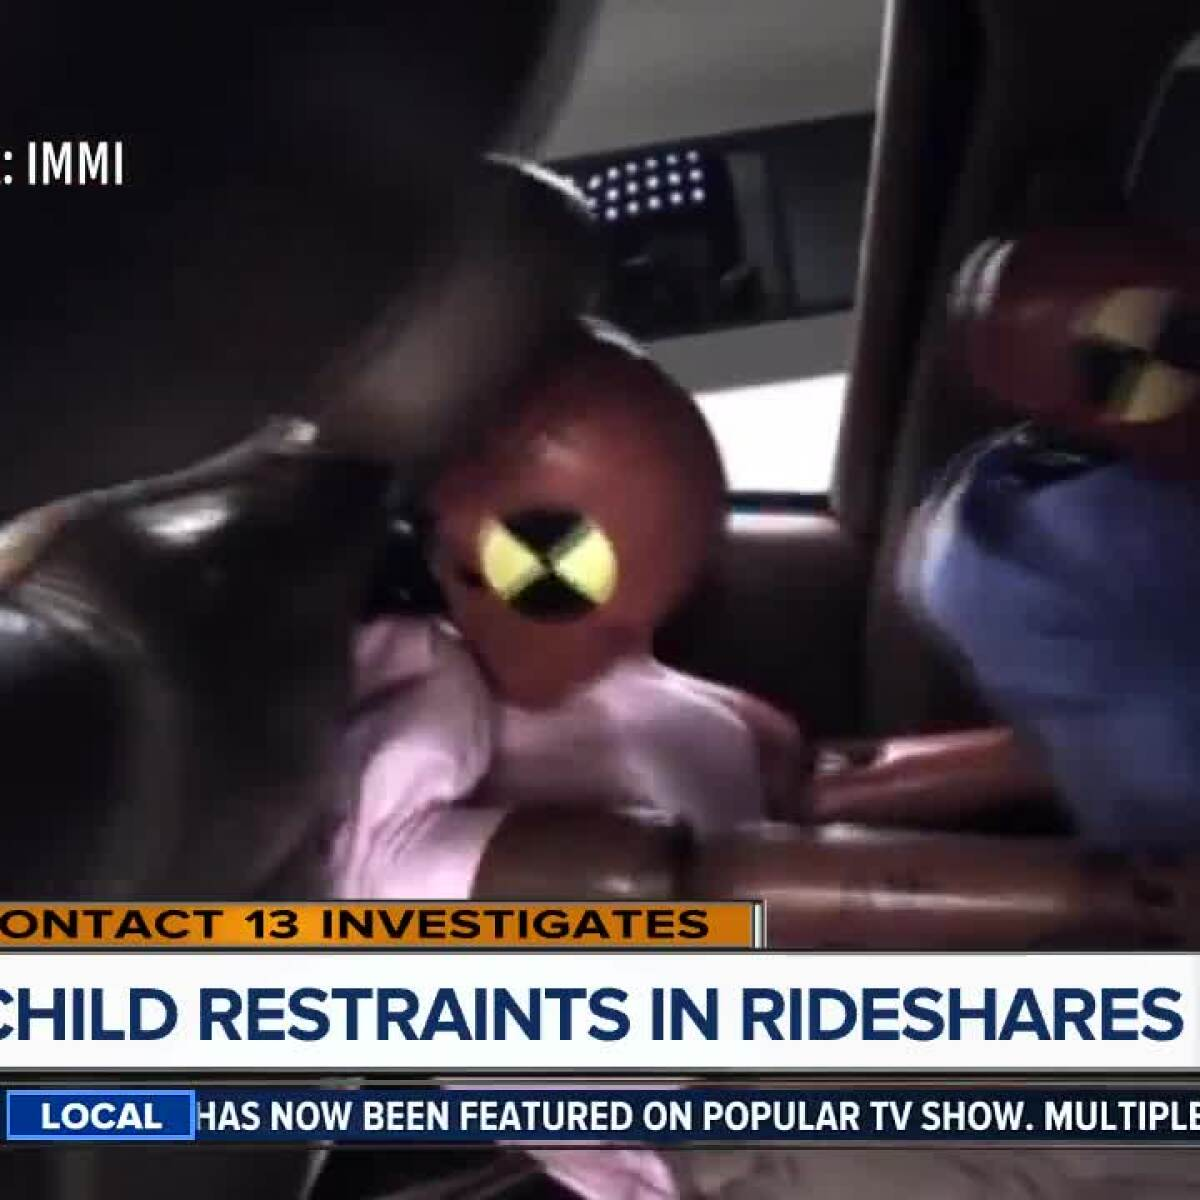 Undercover Video Exposes Child Restraint Exemption For Rideshare Companies In Nevada